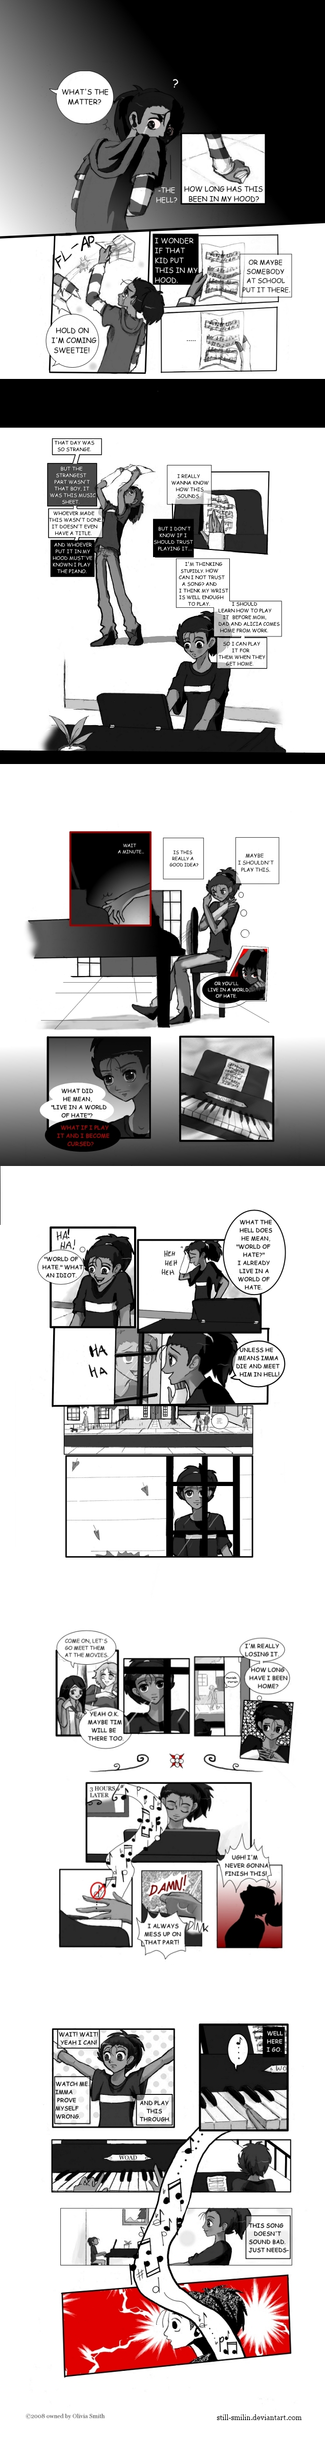 Animosity Sonata Page 34-39 by Aivilo0